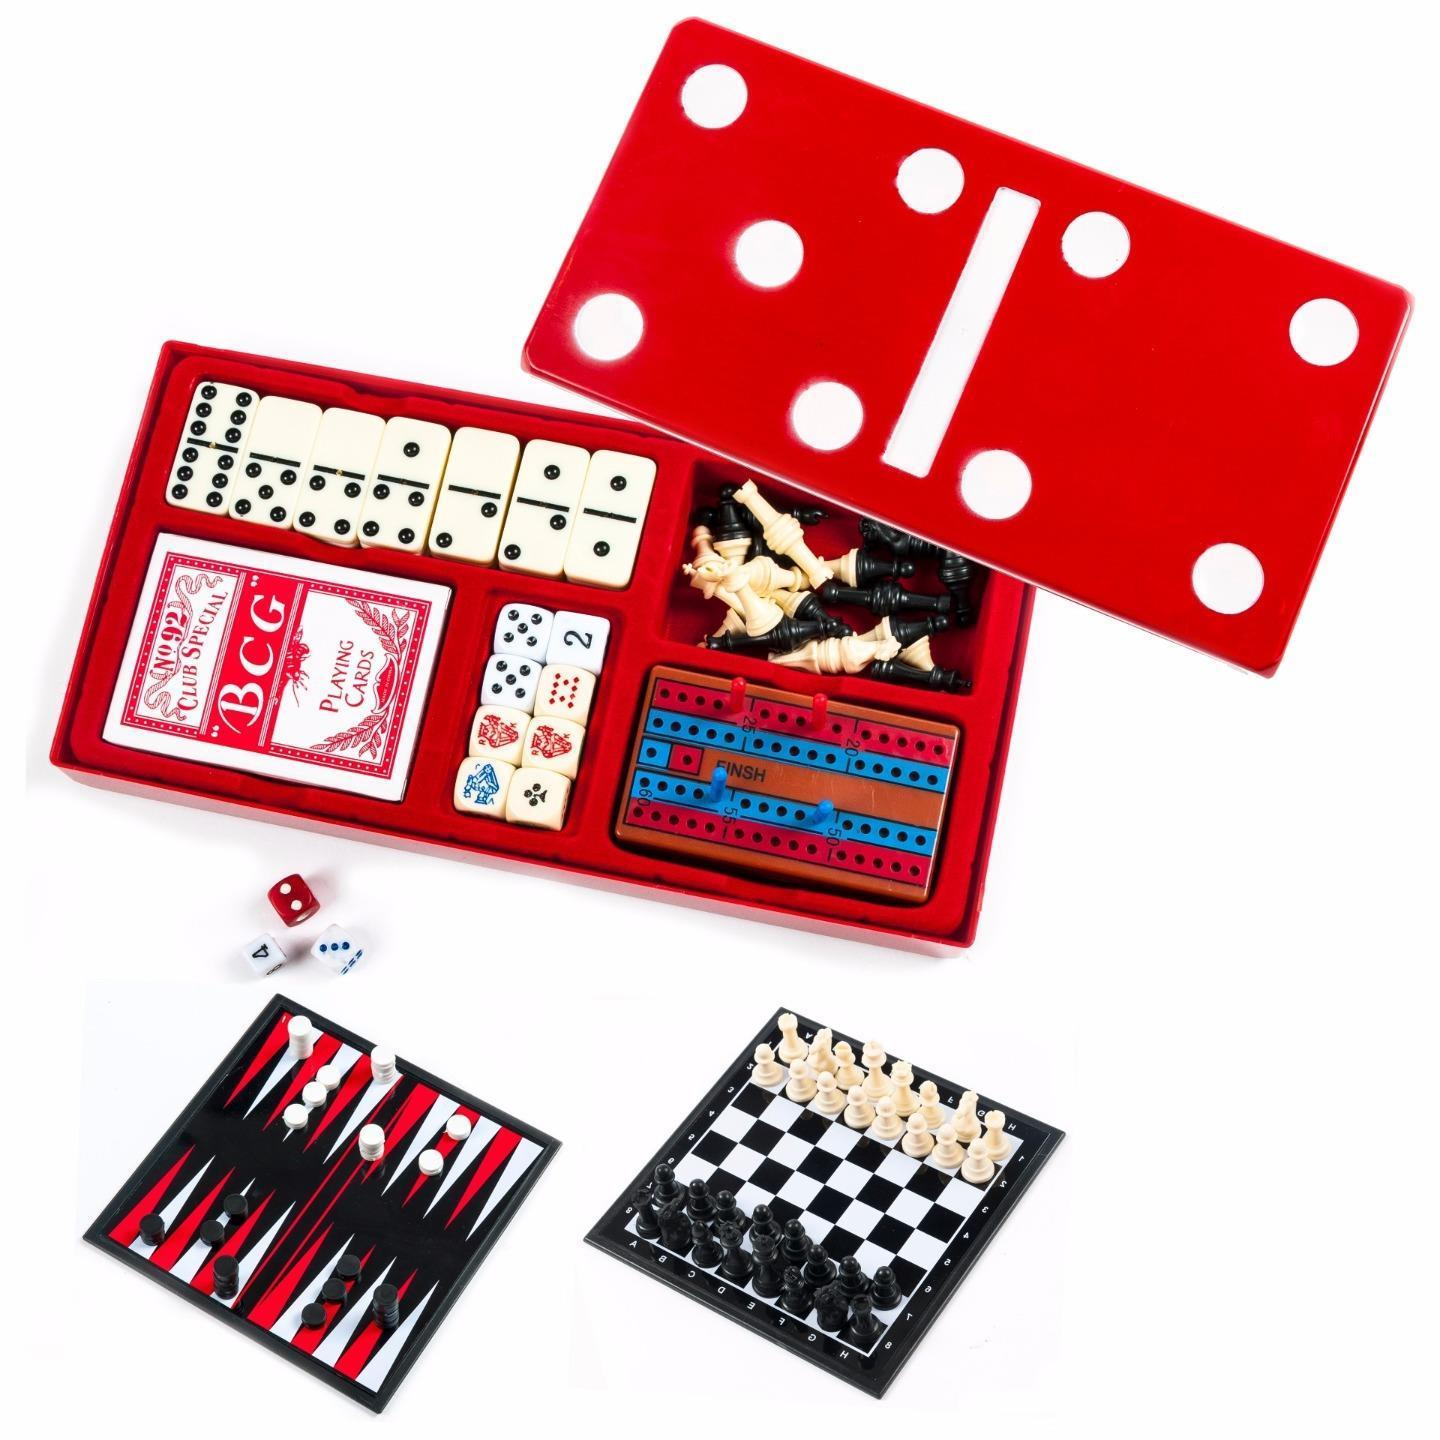 Crib boards for sale uk - 7 In 1 Board Game Set Travel Dominoes Poker Chips Cards Chess Backgammon